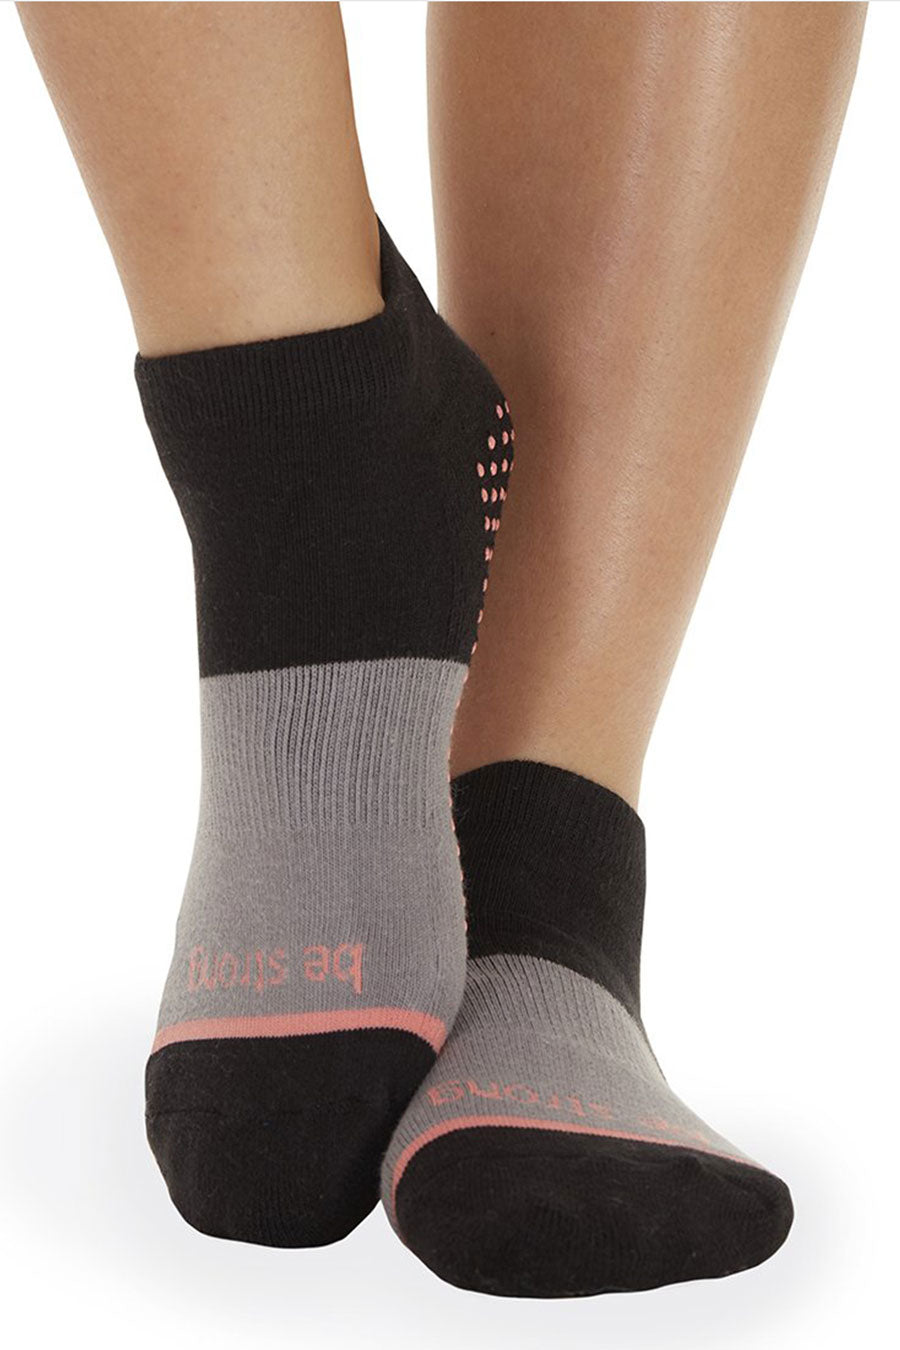 Sticky Be Socks Be Strong Grace Grip Socks - Sculptique